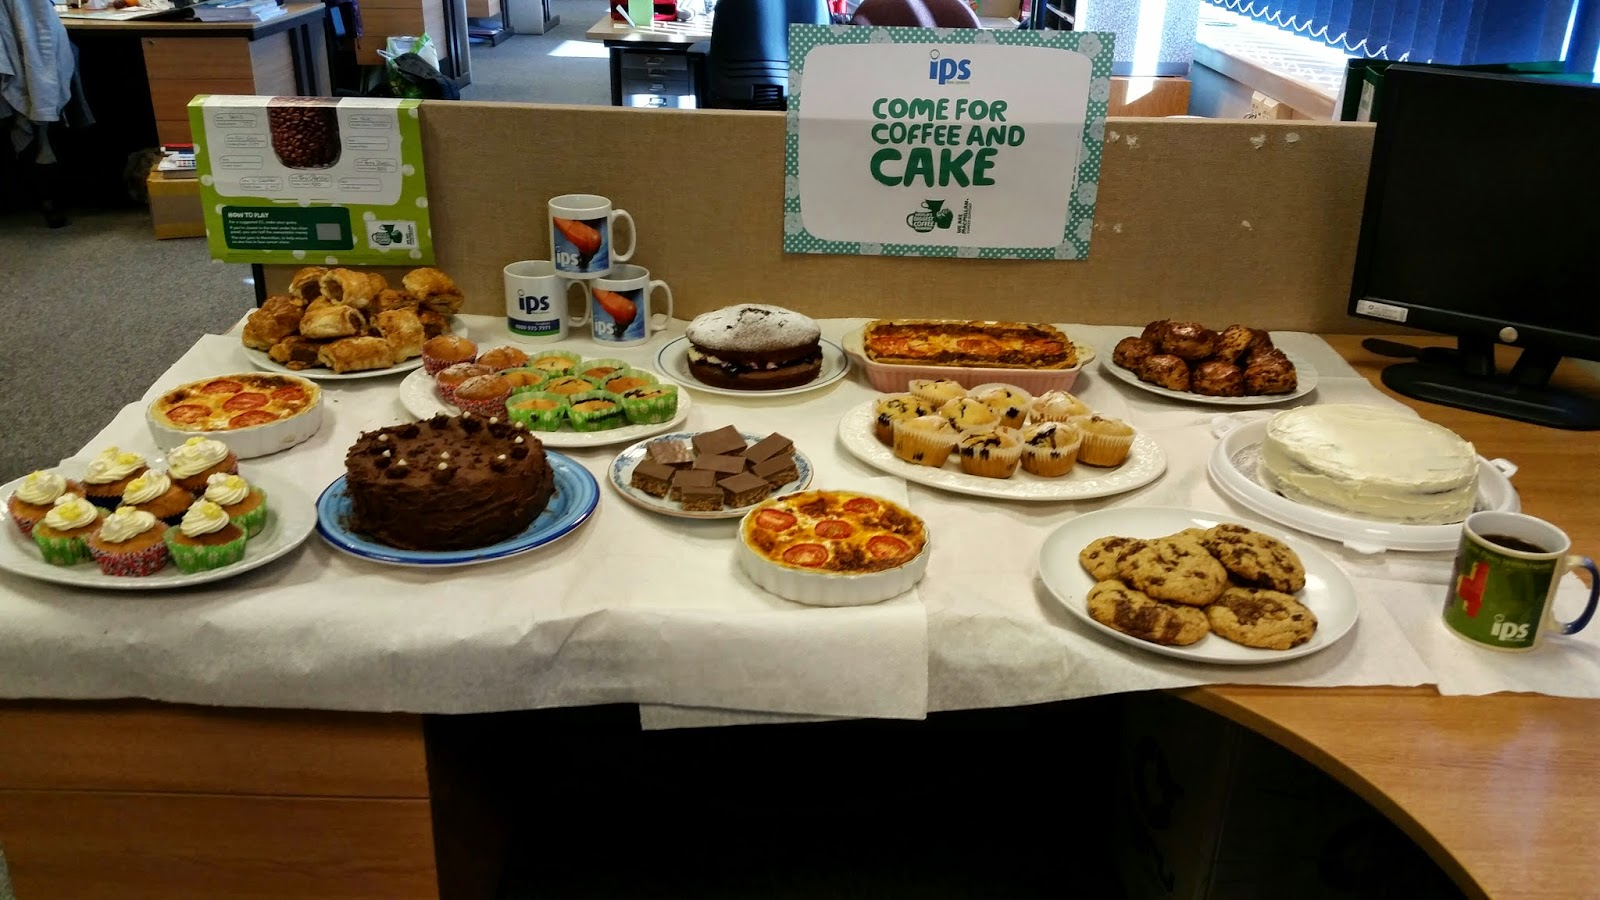 We're stuffed for Macmillan